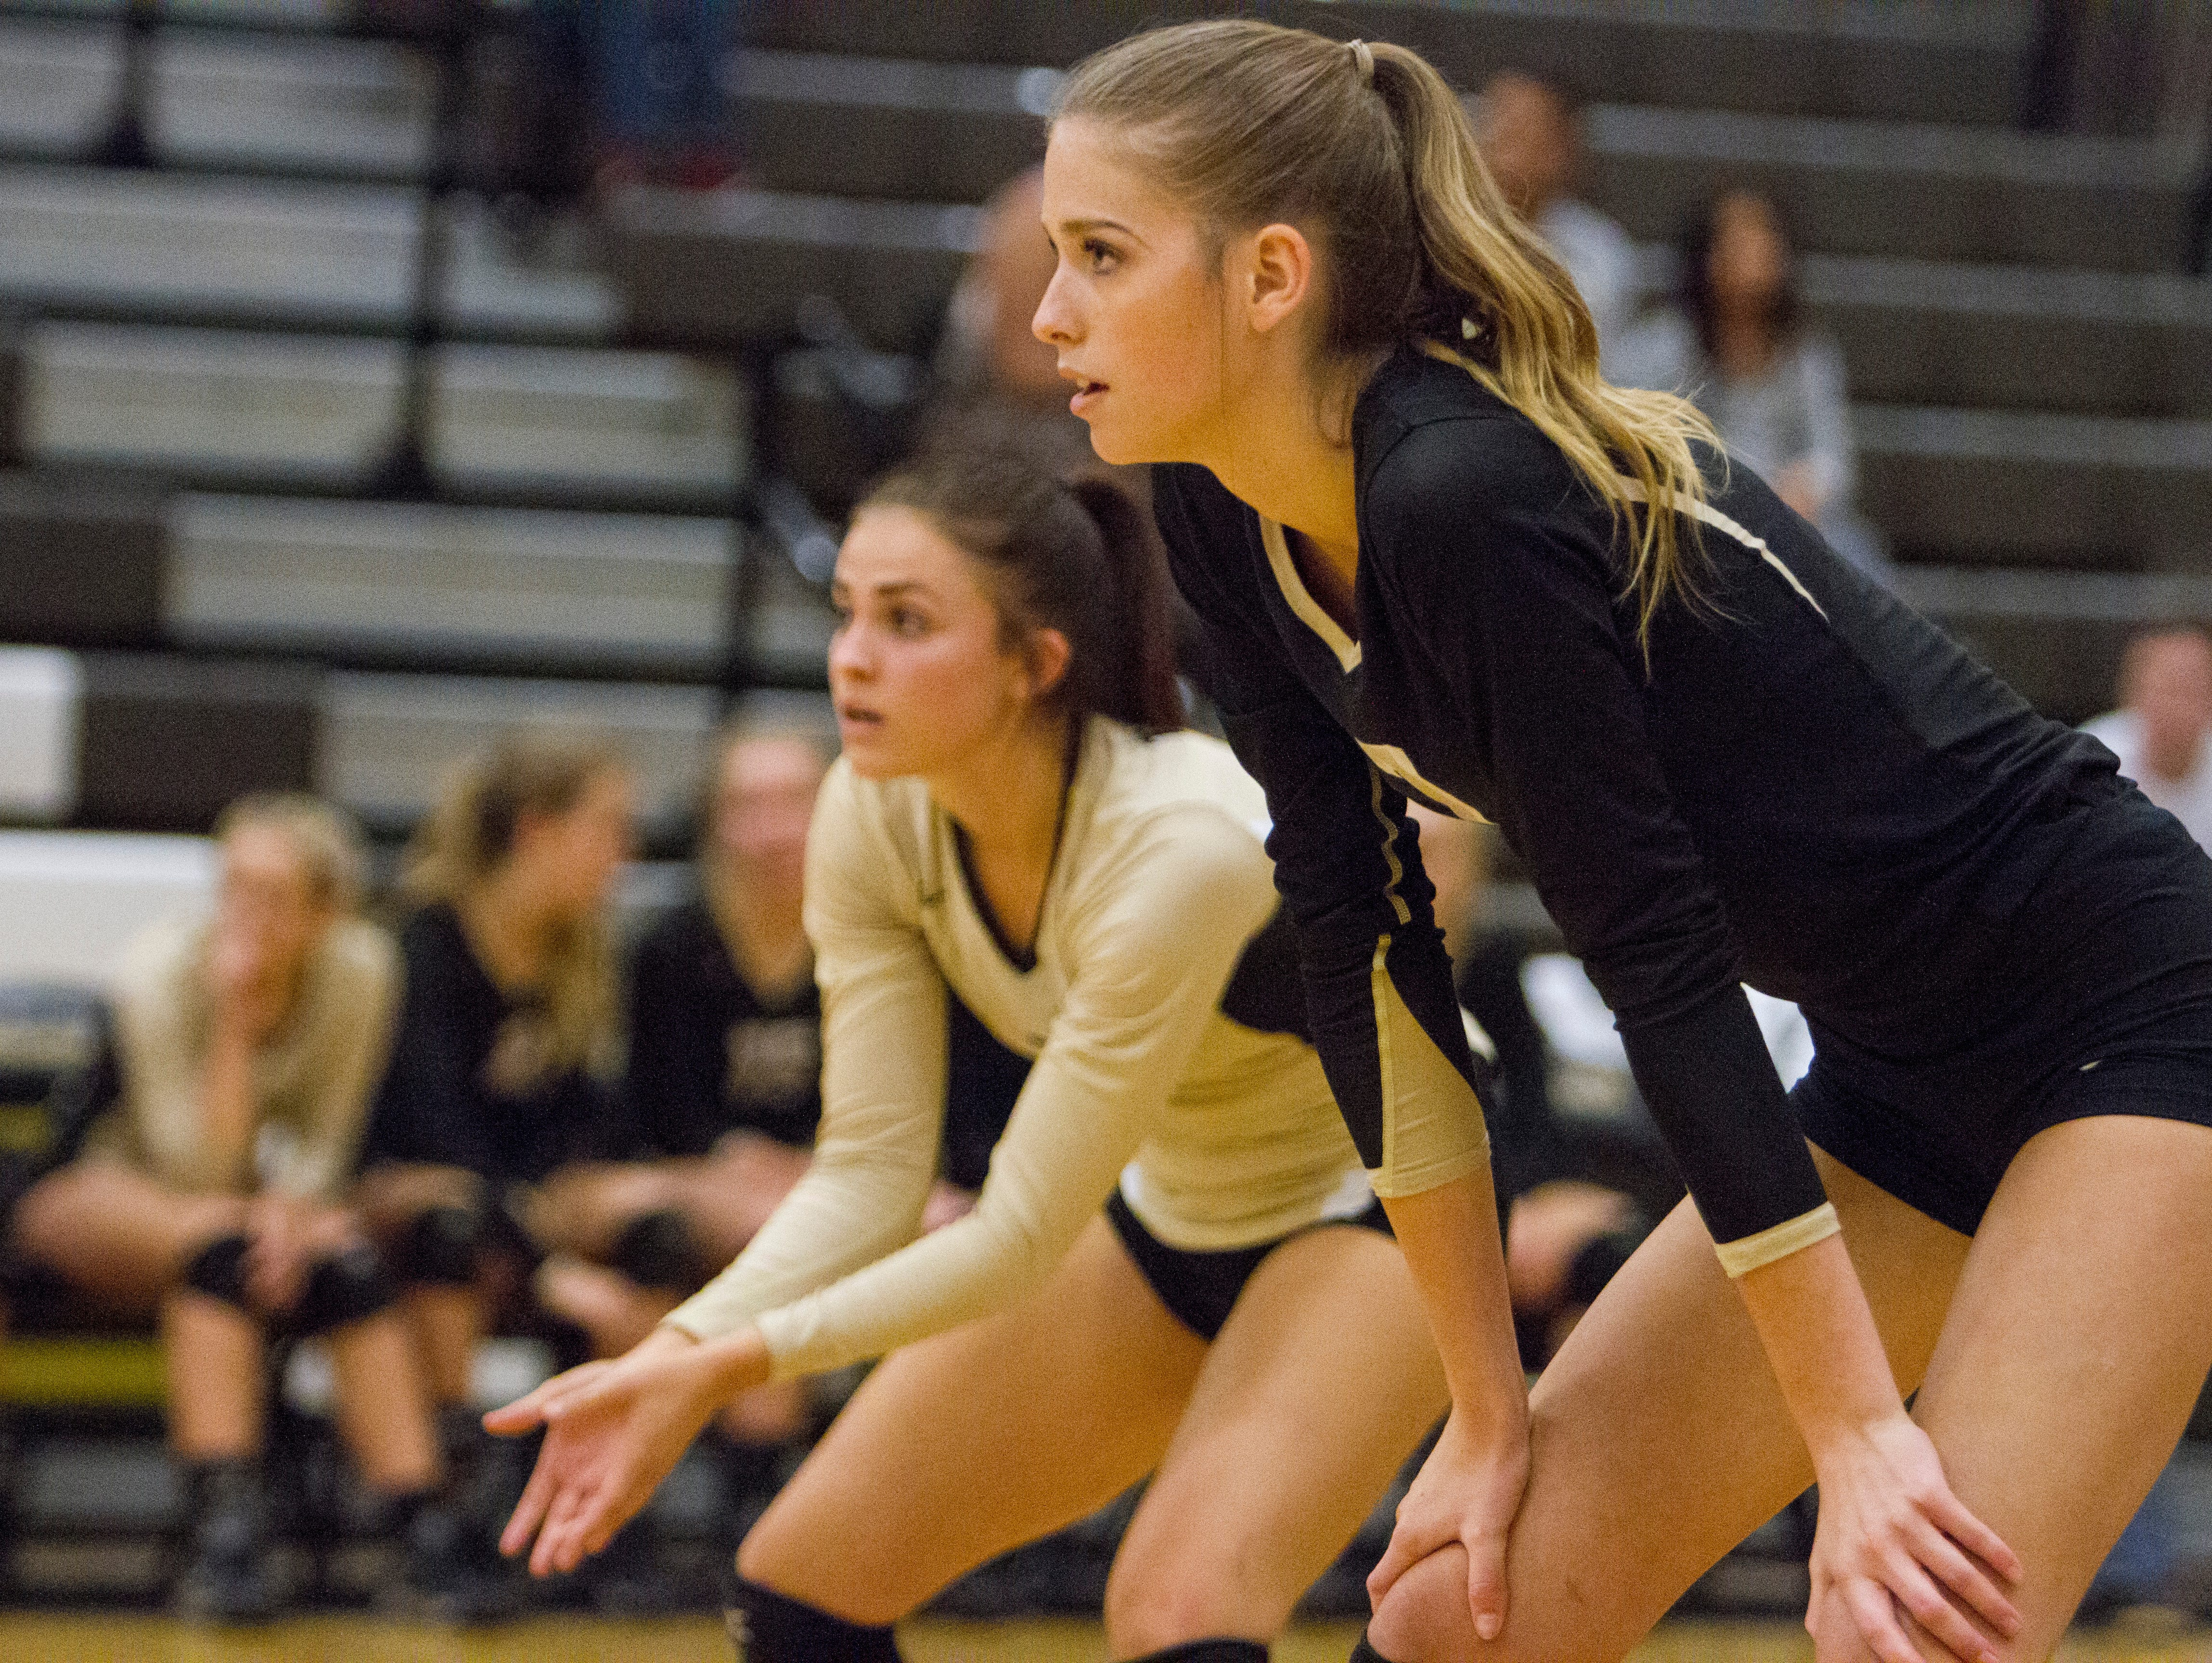 Rachel Winters and Charity Bradley combined for 28 kills and 23 digs as Desert Hills swept Canyon View (25-19, 25-11, 25-15) at home on Thursday. Hailee Harmer led the way with 31 assists in the win for the Thunder.